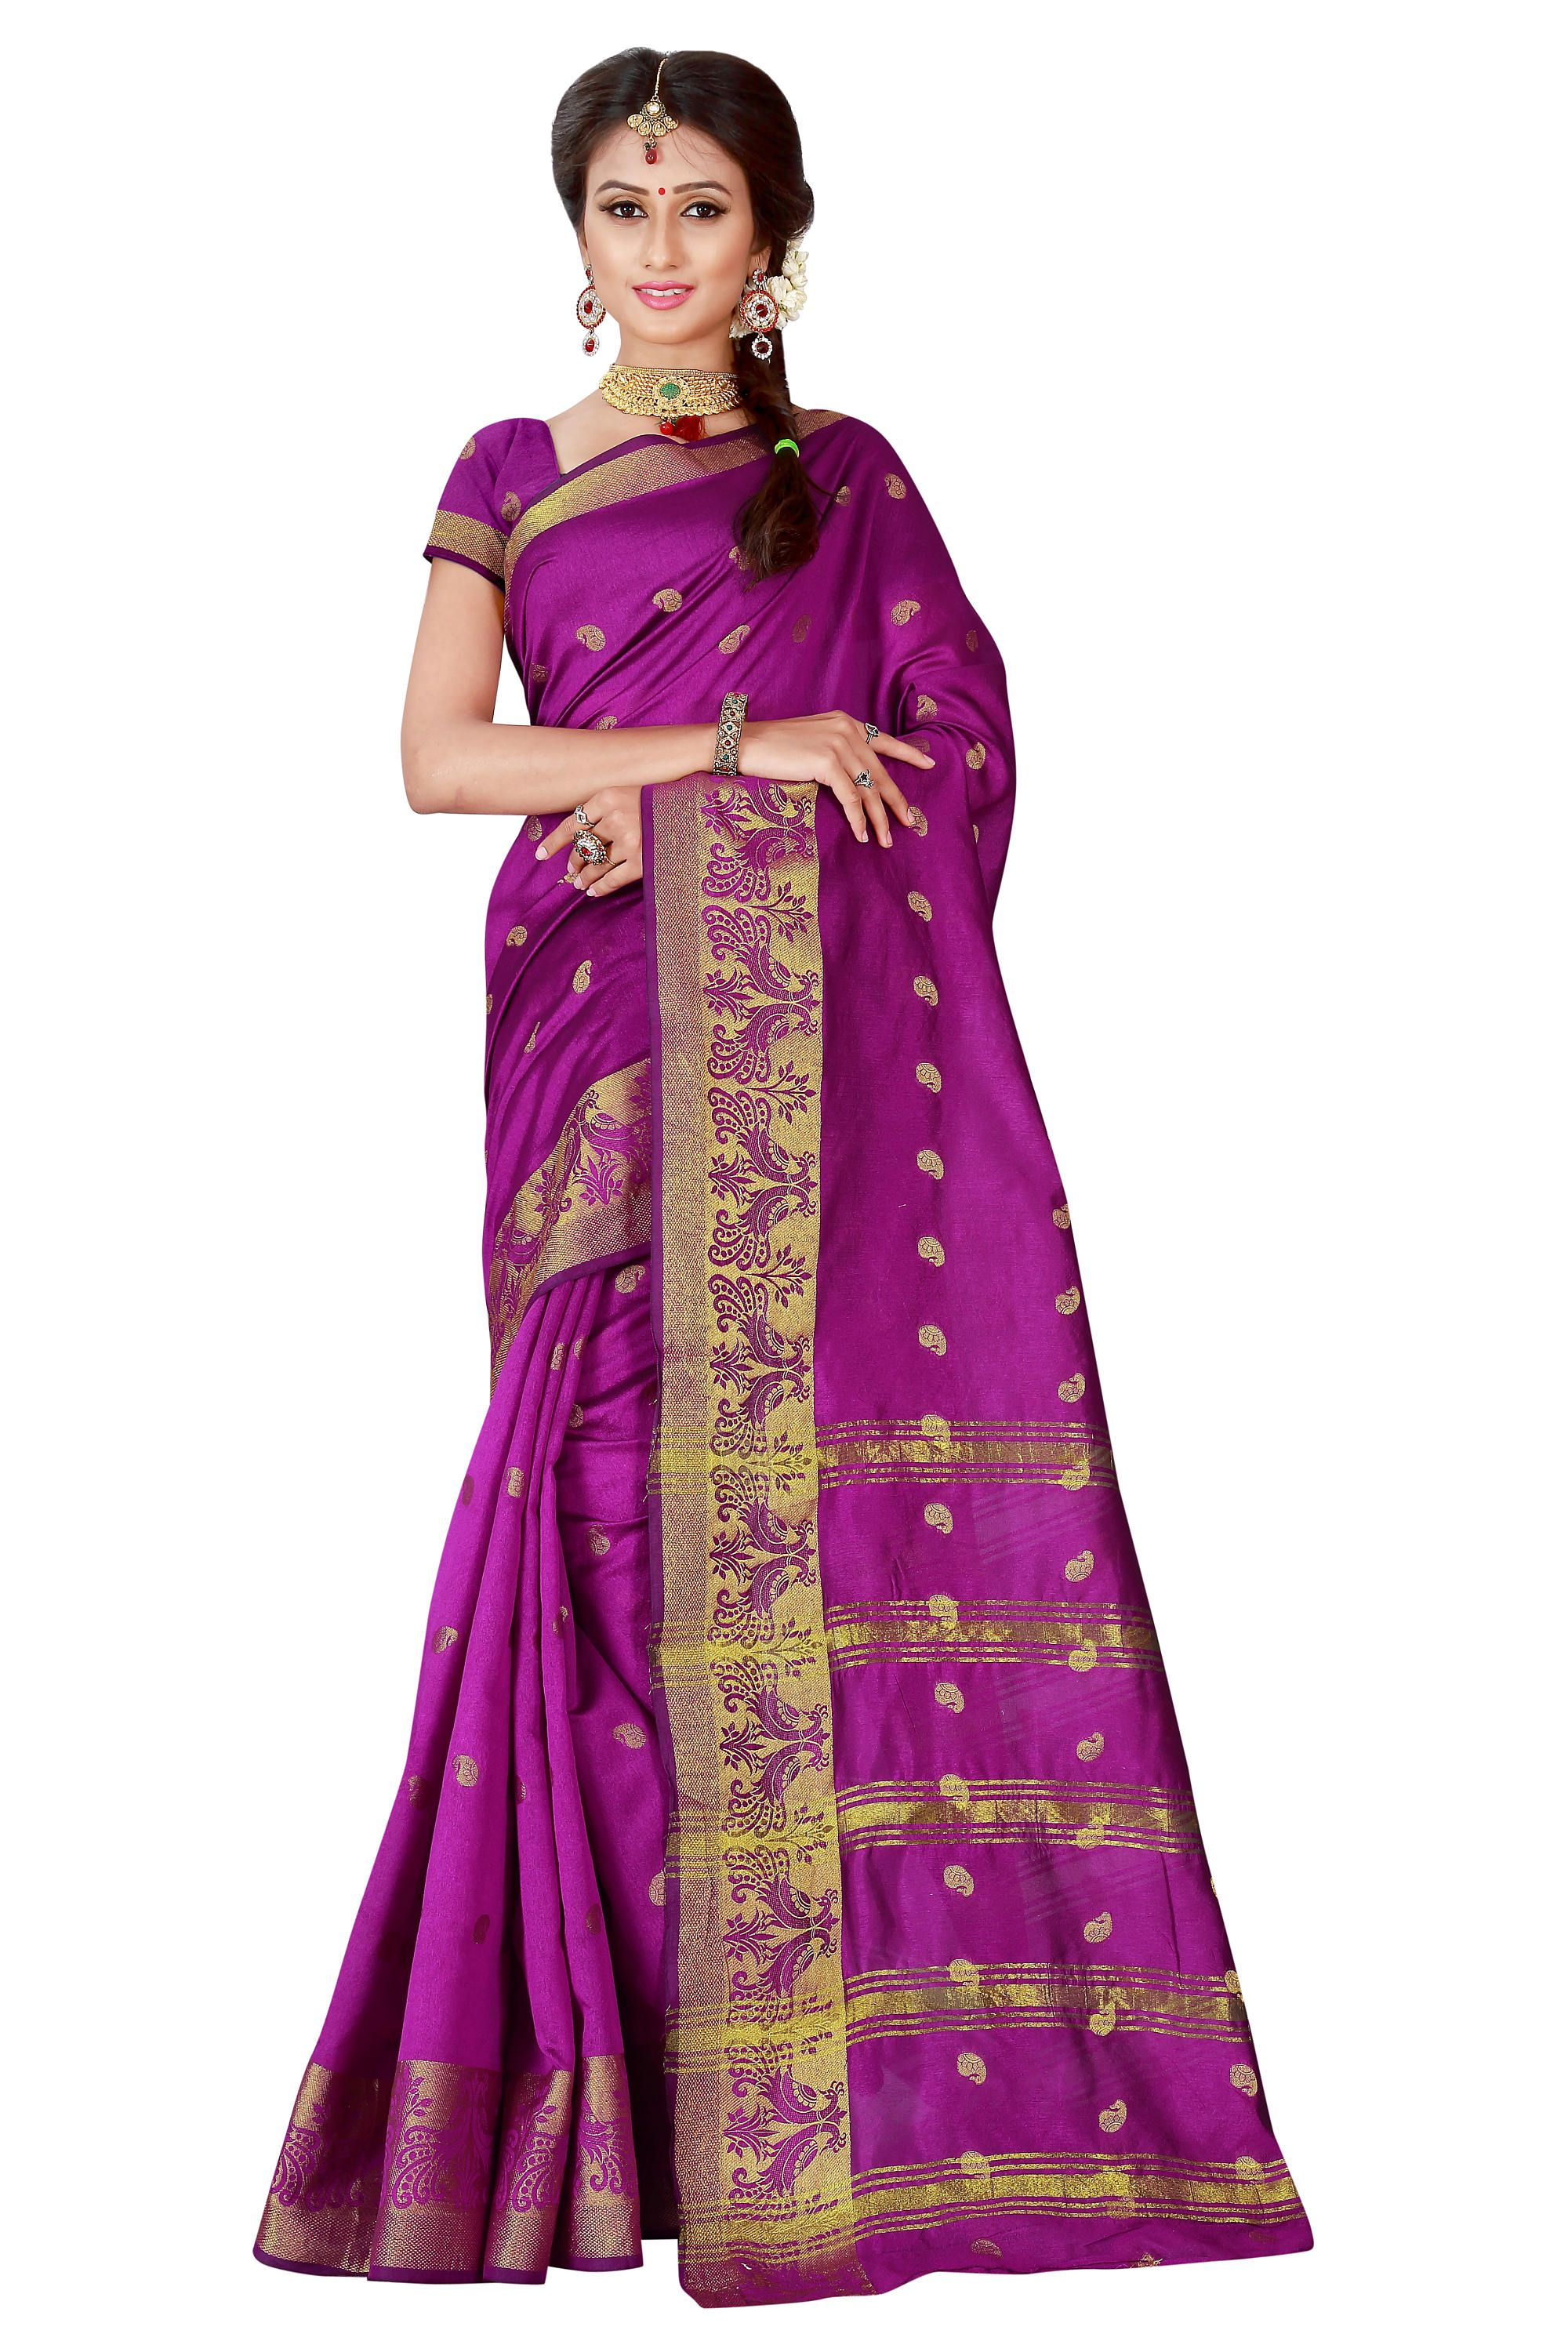 490b306dccc Excited to share the latest addition to my  etsy shop  Indian Designer  Magenta Colored